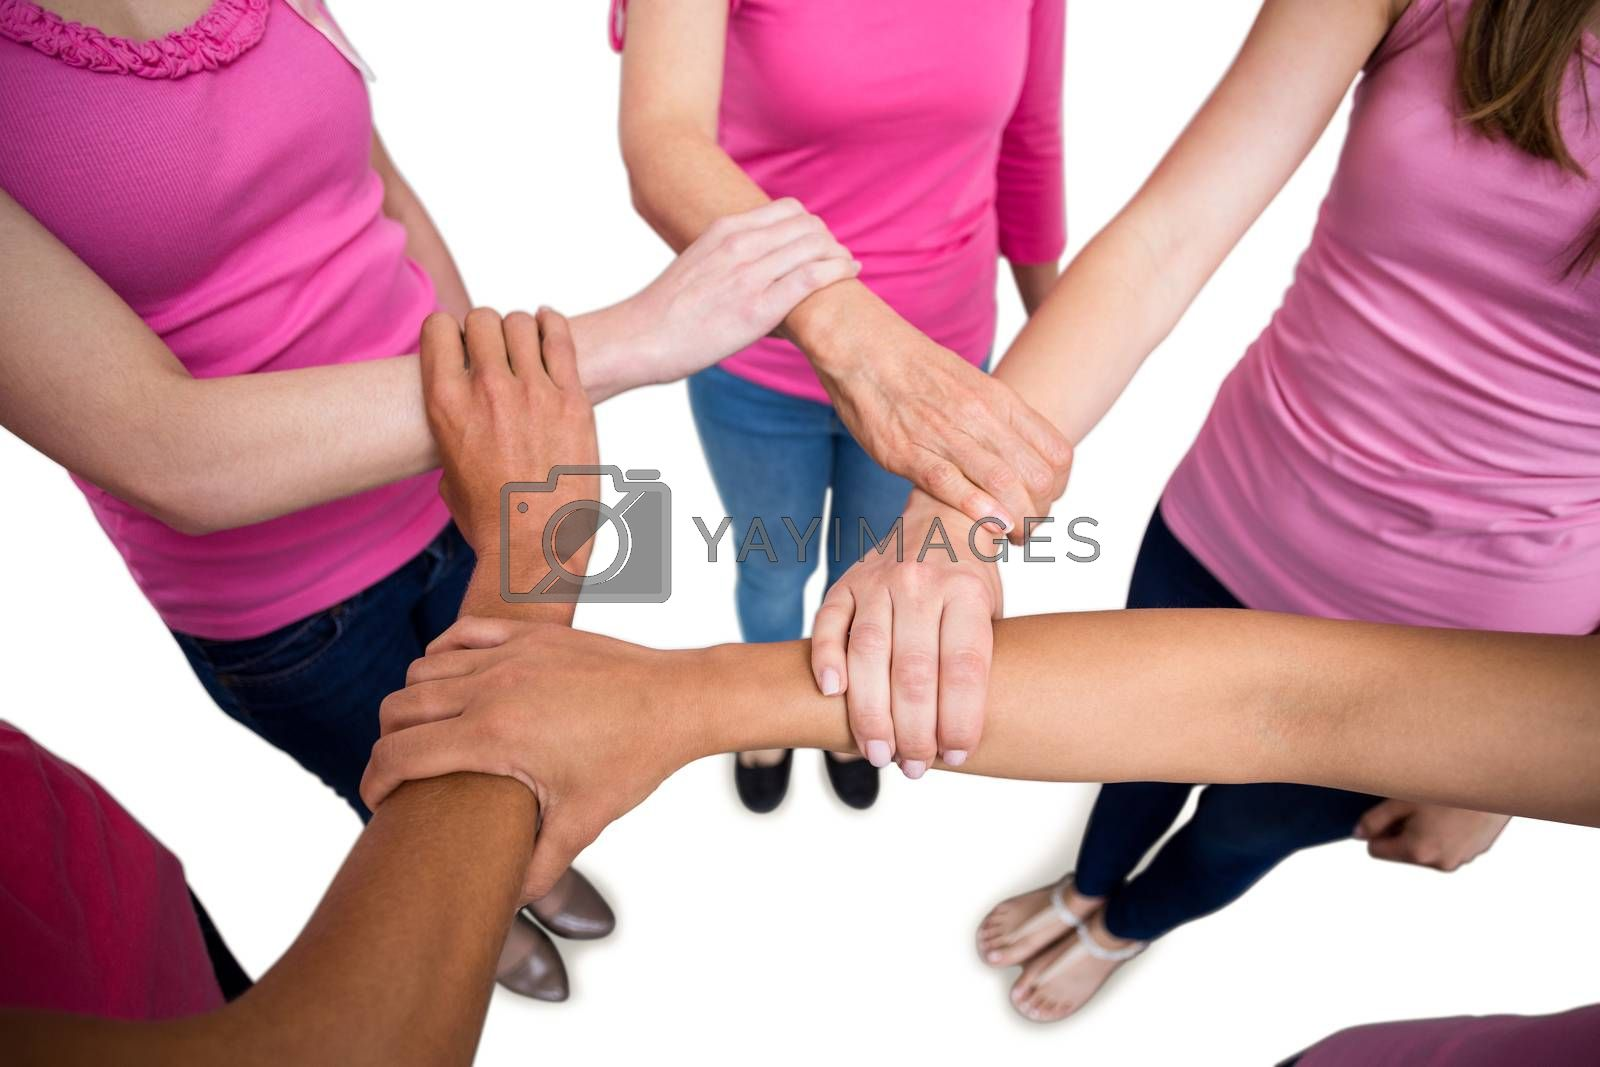 Royalty free image of Women in pink outfits joining in a circle for breast cancer awareness by Wavebreakmedia